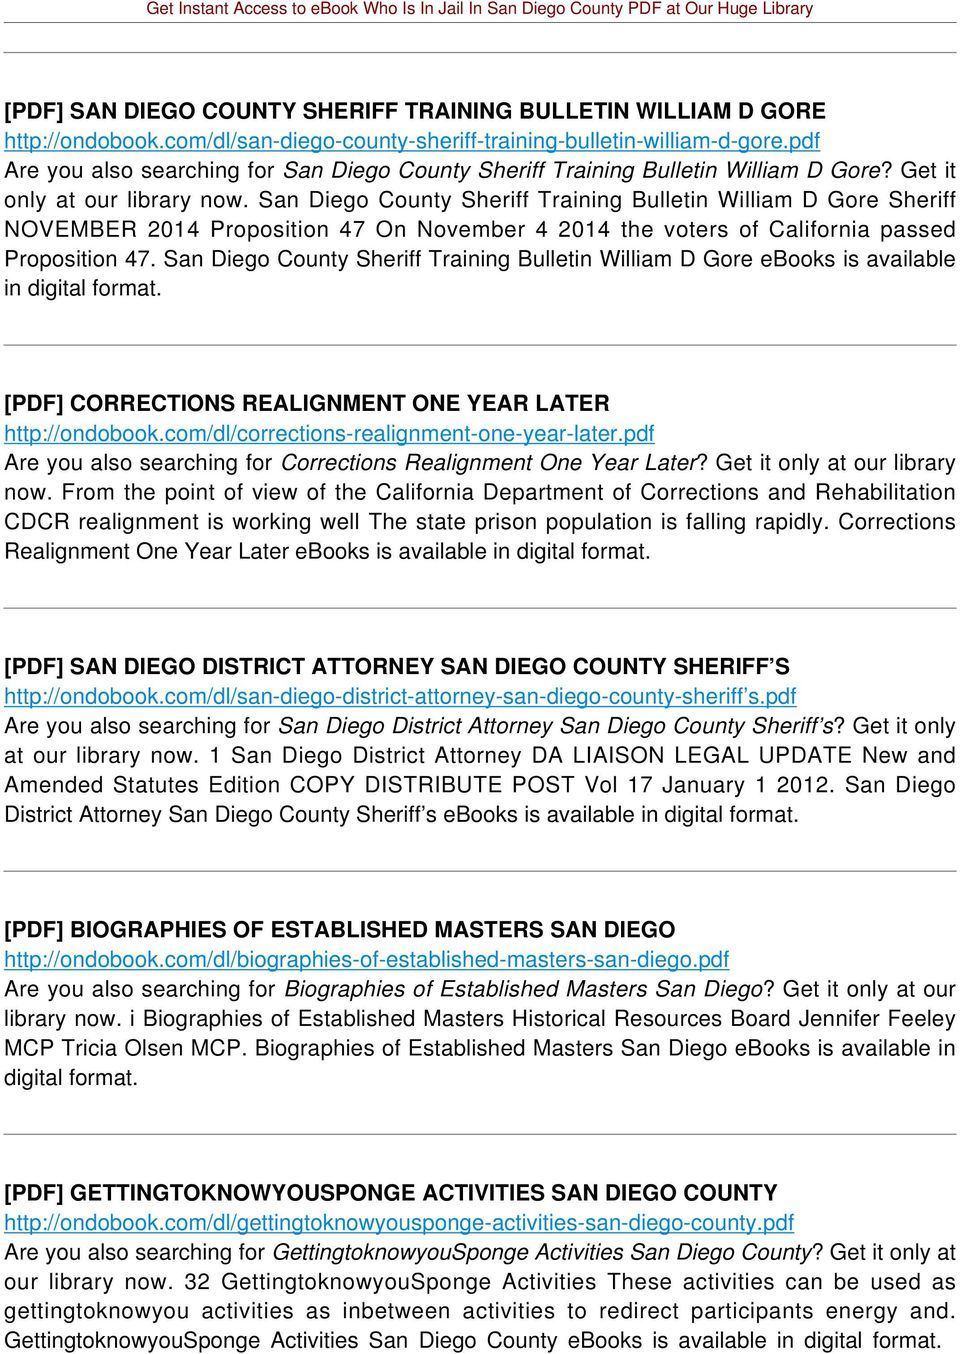 San Diego County Sheriff Training Bulletin William D Gore Sheriff NOVEMBER 2014 Proposition 47 On November 4 2014 the voters of California passed Proposition 47.